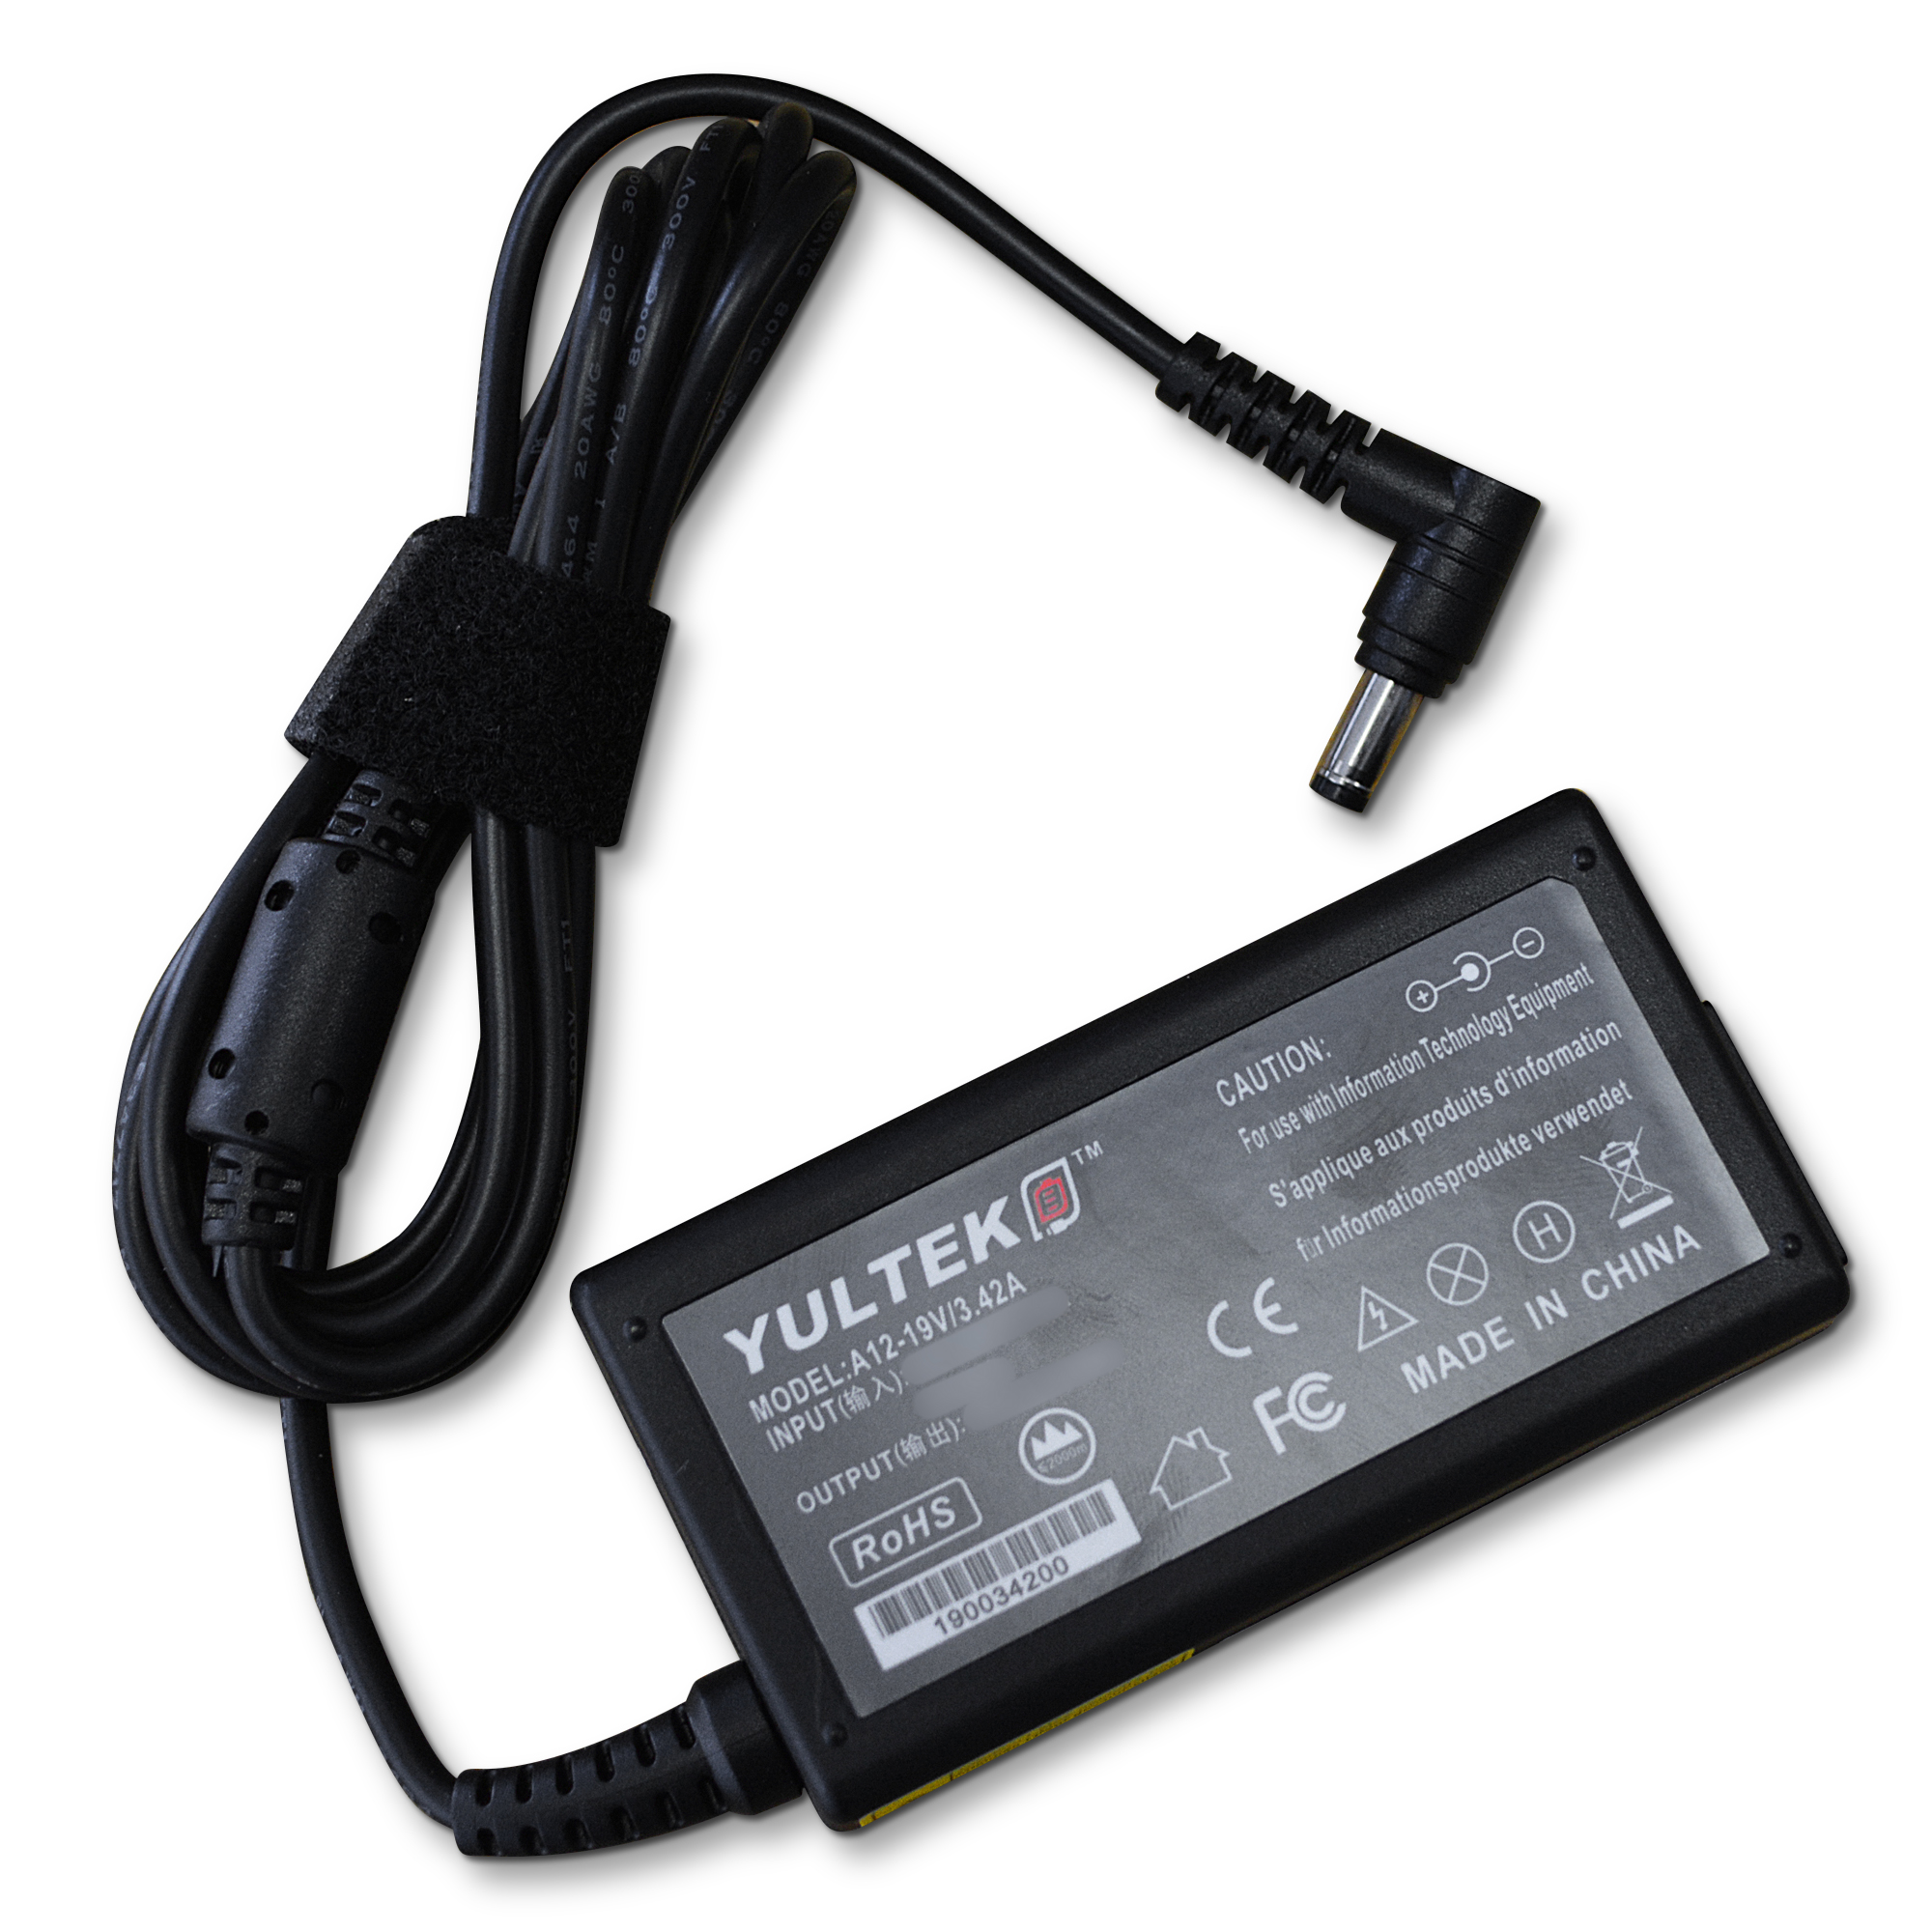 Fujitsu-Siemens Part Number 6032B0019001 Laptop Charger